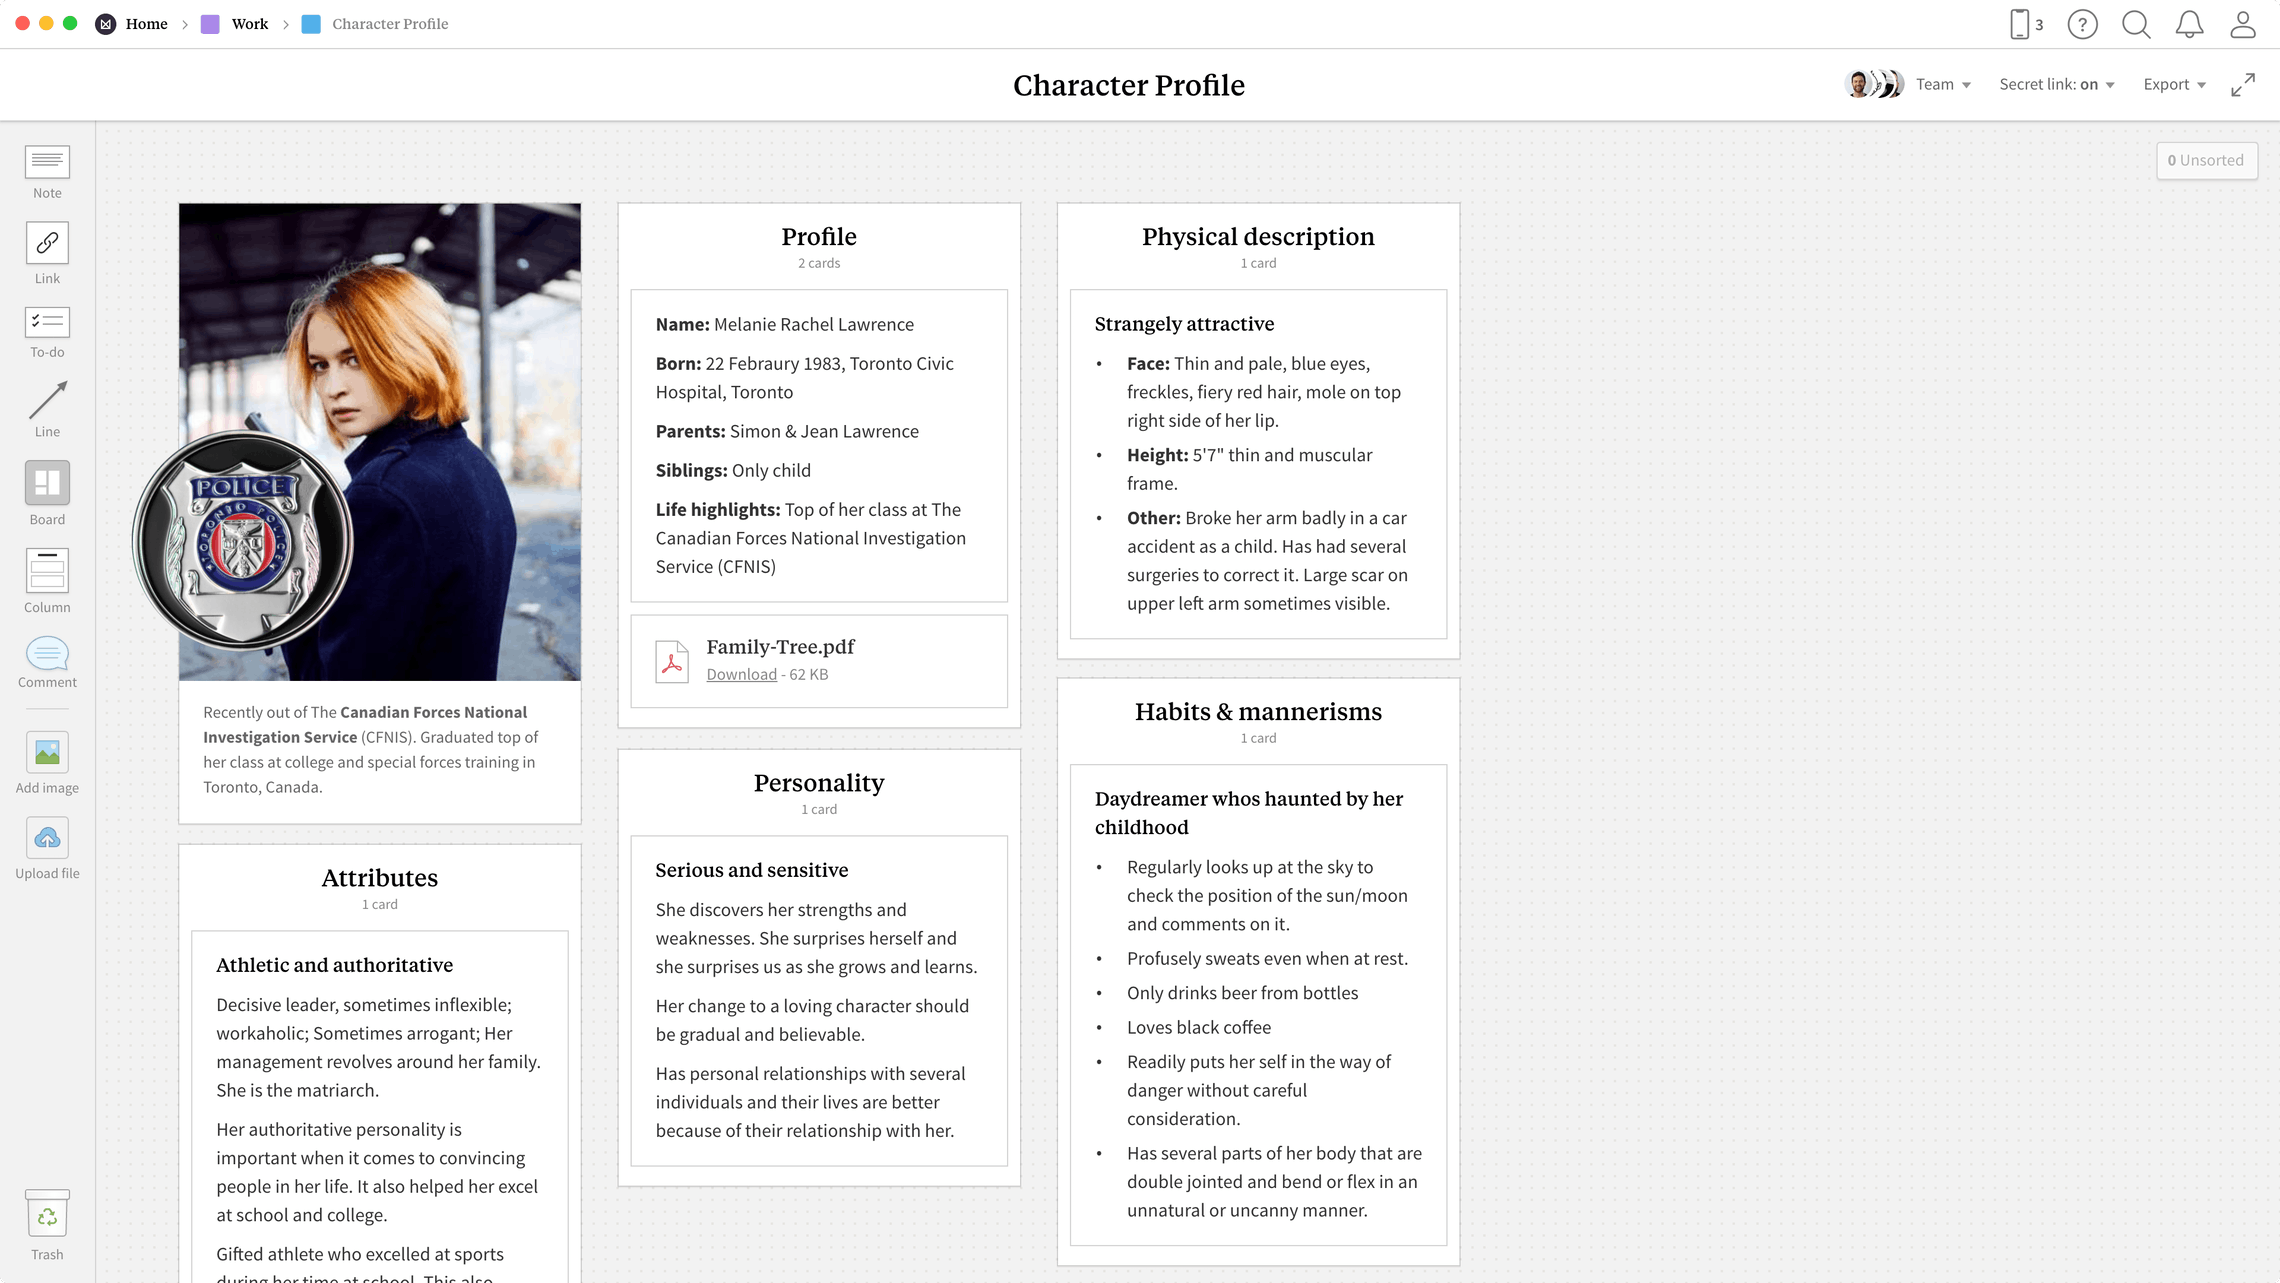 Character Profile Template, within the Milanote app